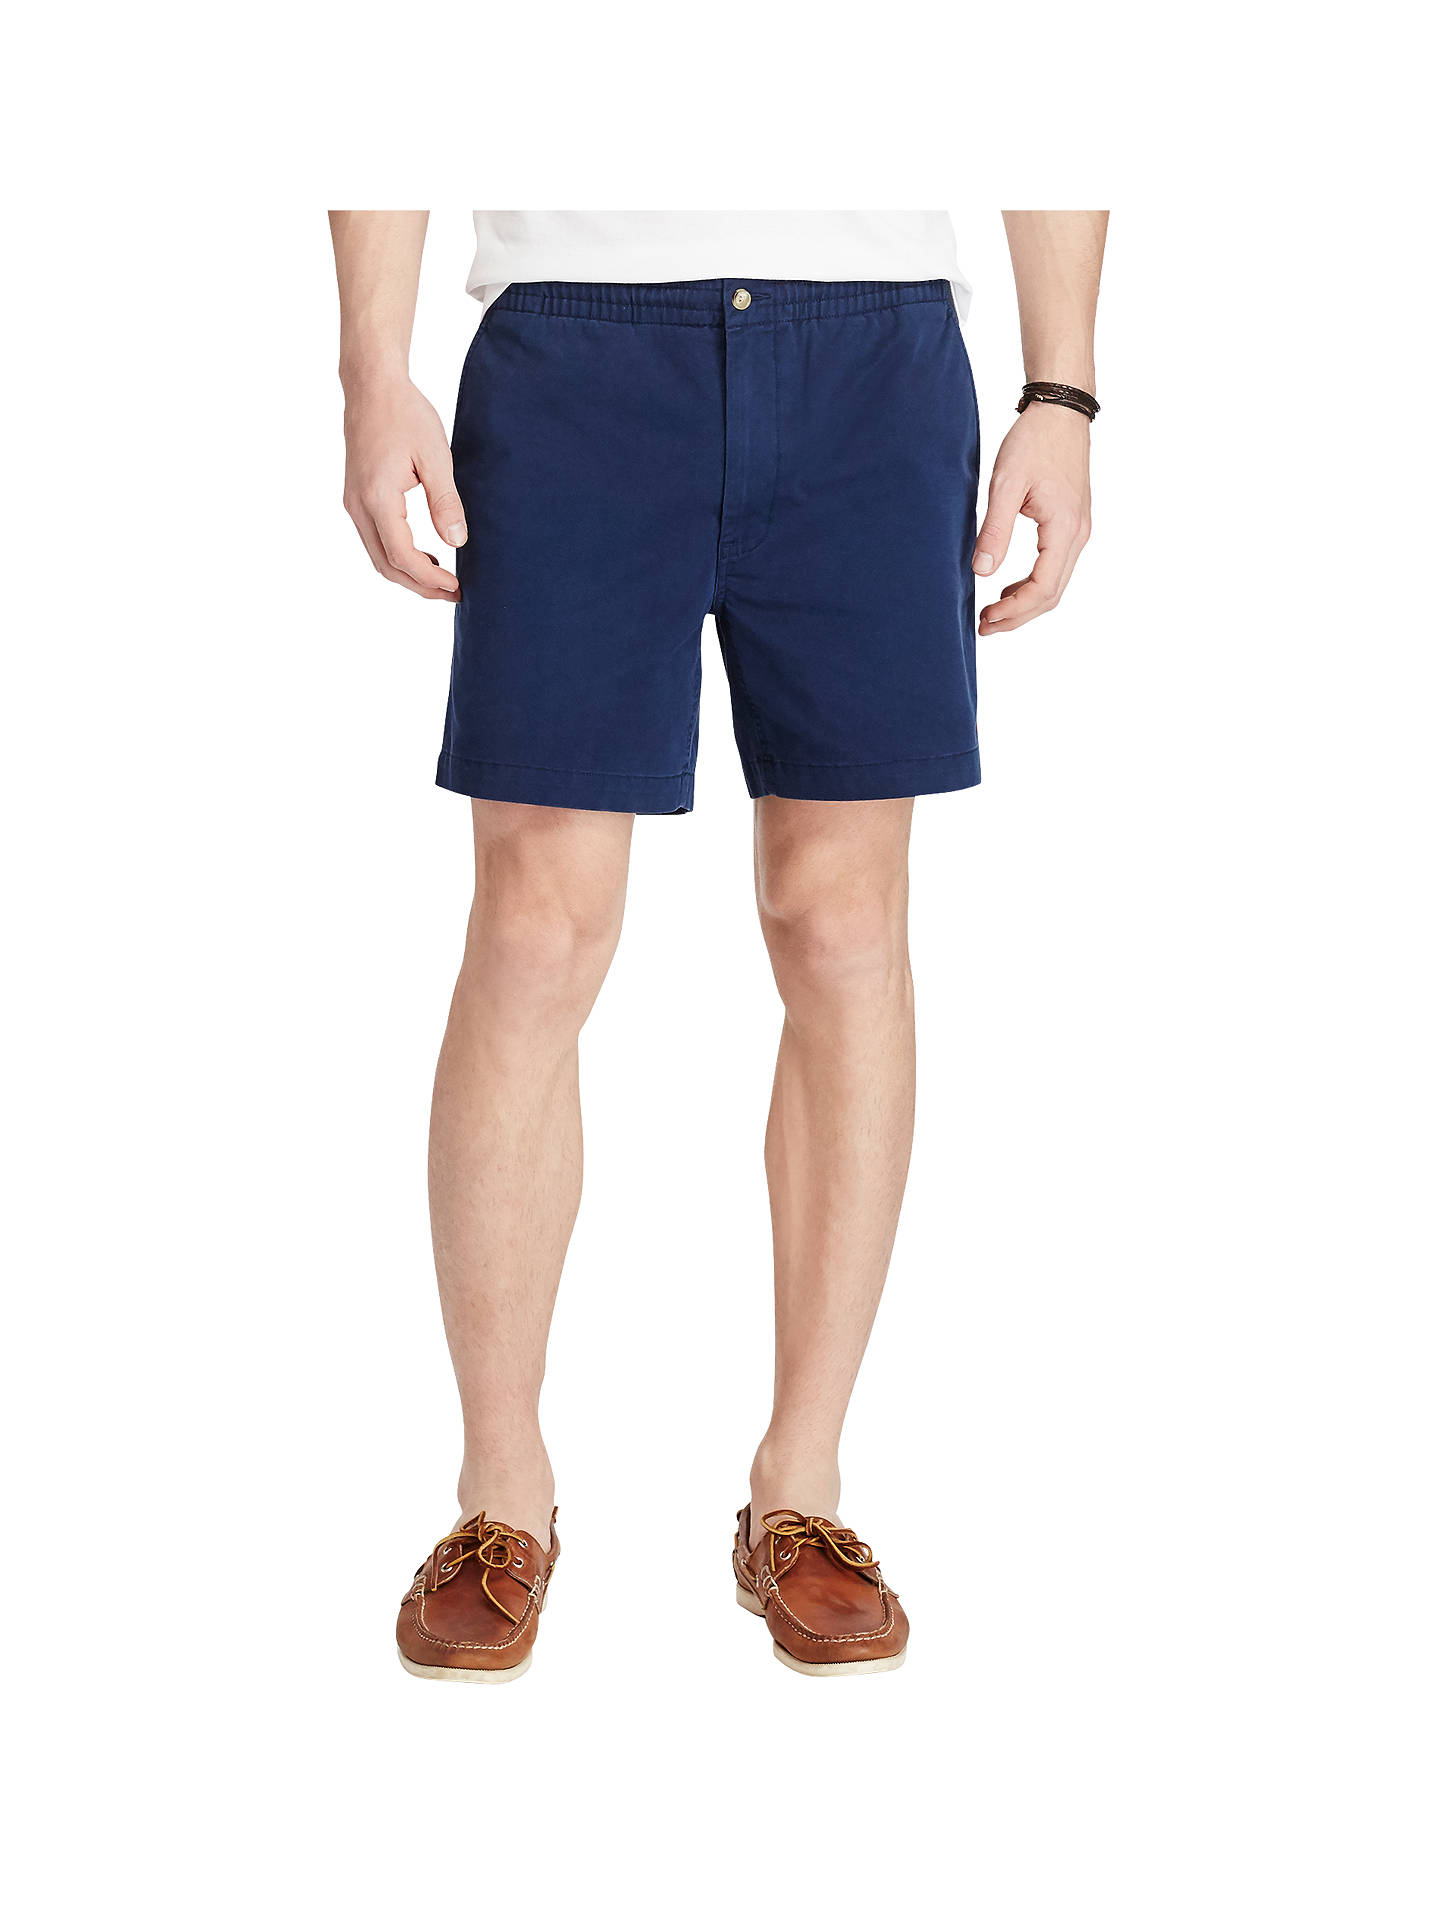 7467535d9 Polo Ralph Lauren Classic Fit Polo Prepster Shorts at John Lewis ...